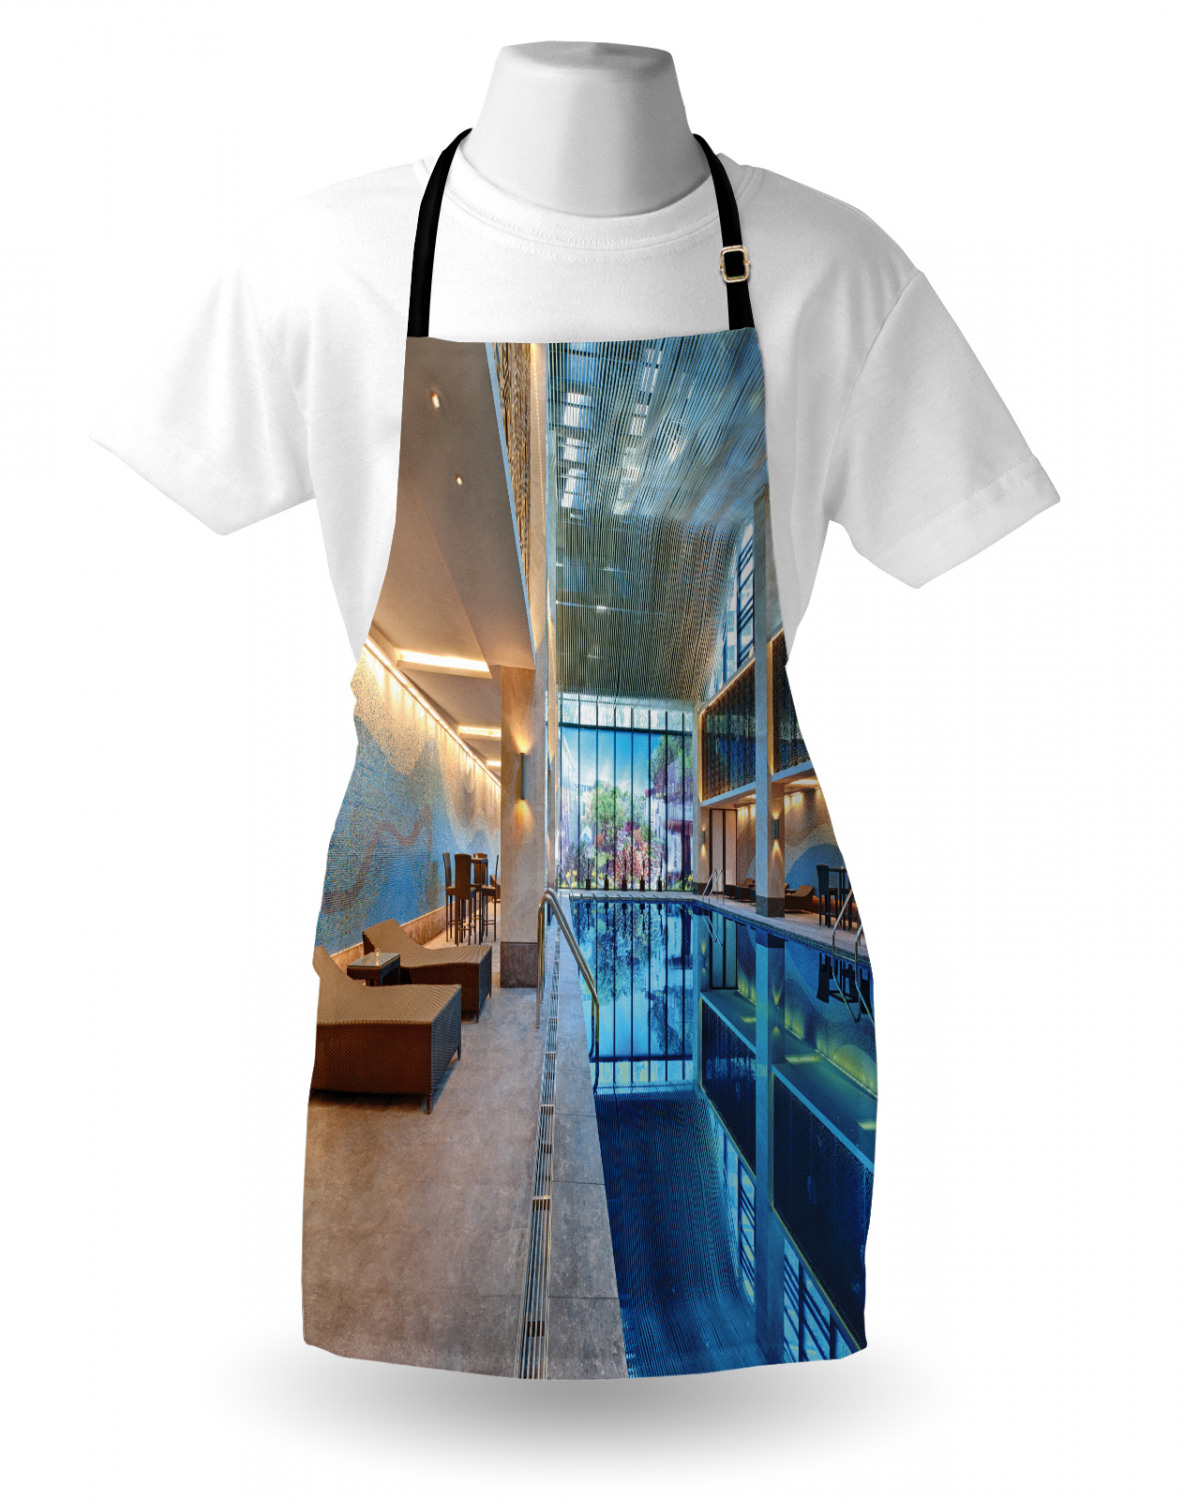 Keep Calm Apron Unisex Kitchen Bib with Adjustable Neck for Cooking Gardening